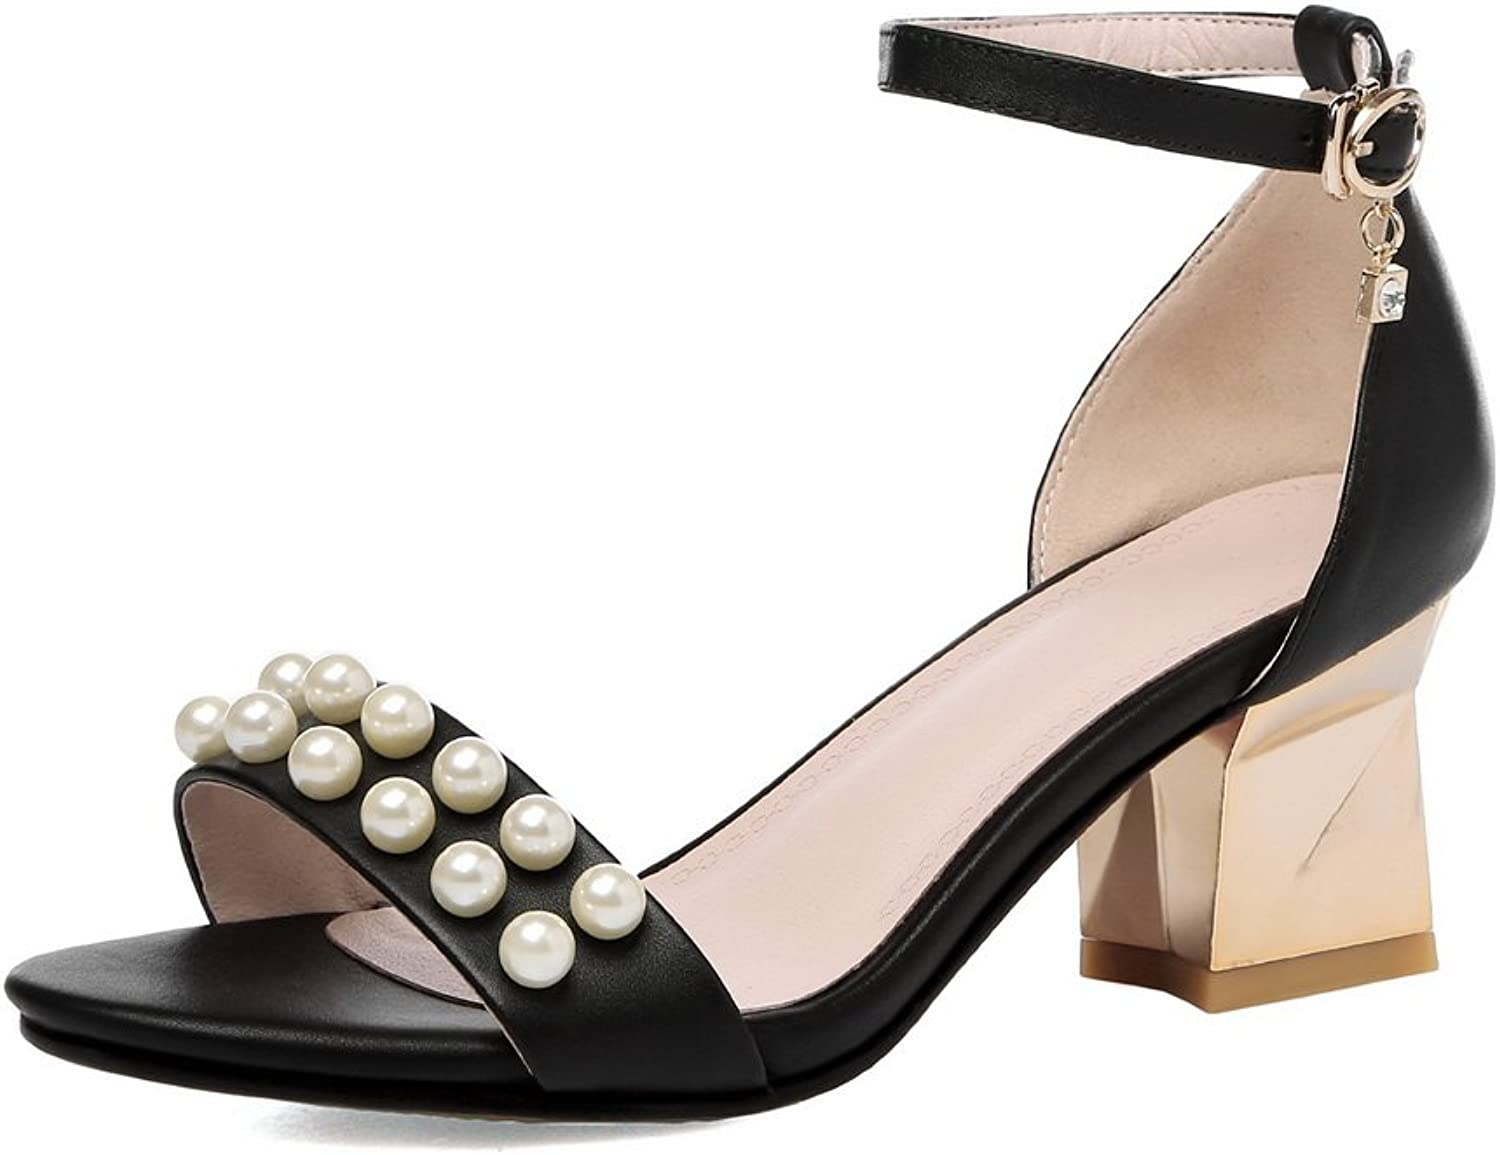 1TO9 Womens Studded Non-Marking Fashion Urethane Sandals MJS03339